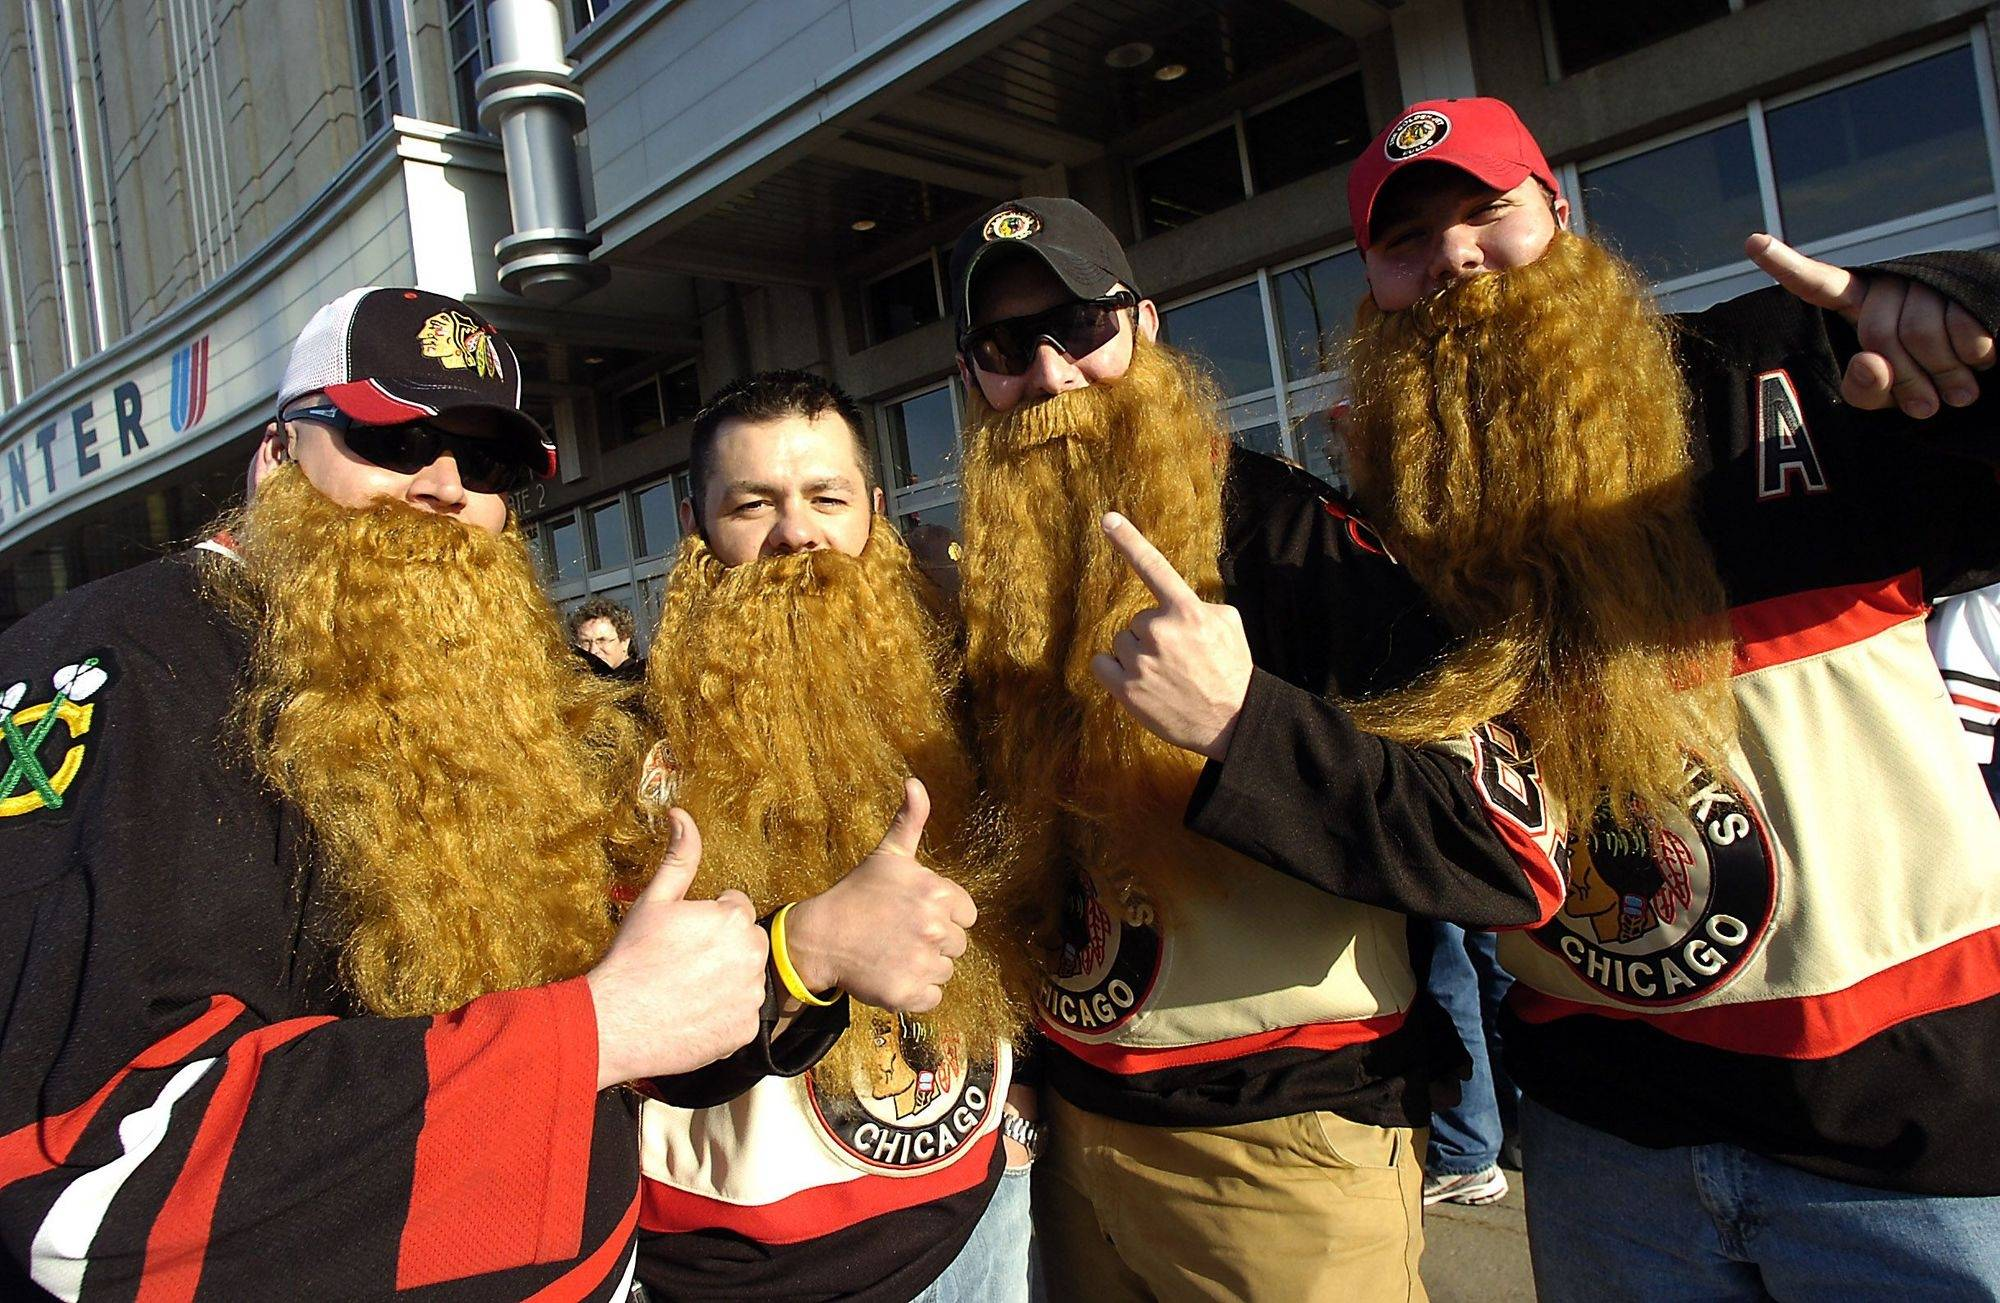 Showing off their beards and their support for Blackhawks player Patrick Kane, who at his young age likely can't grown a beard, are Jeff Minchuk, Scott Shaginaw, Tim Thomas and Dan Matusik all of Indiana.